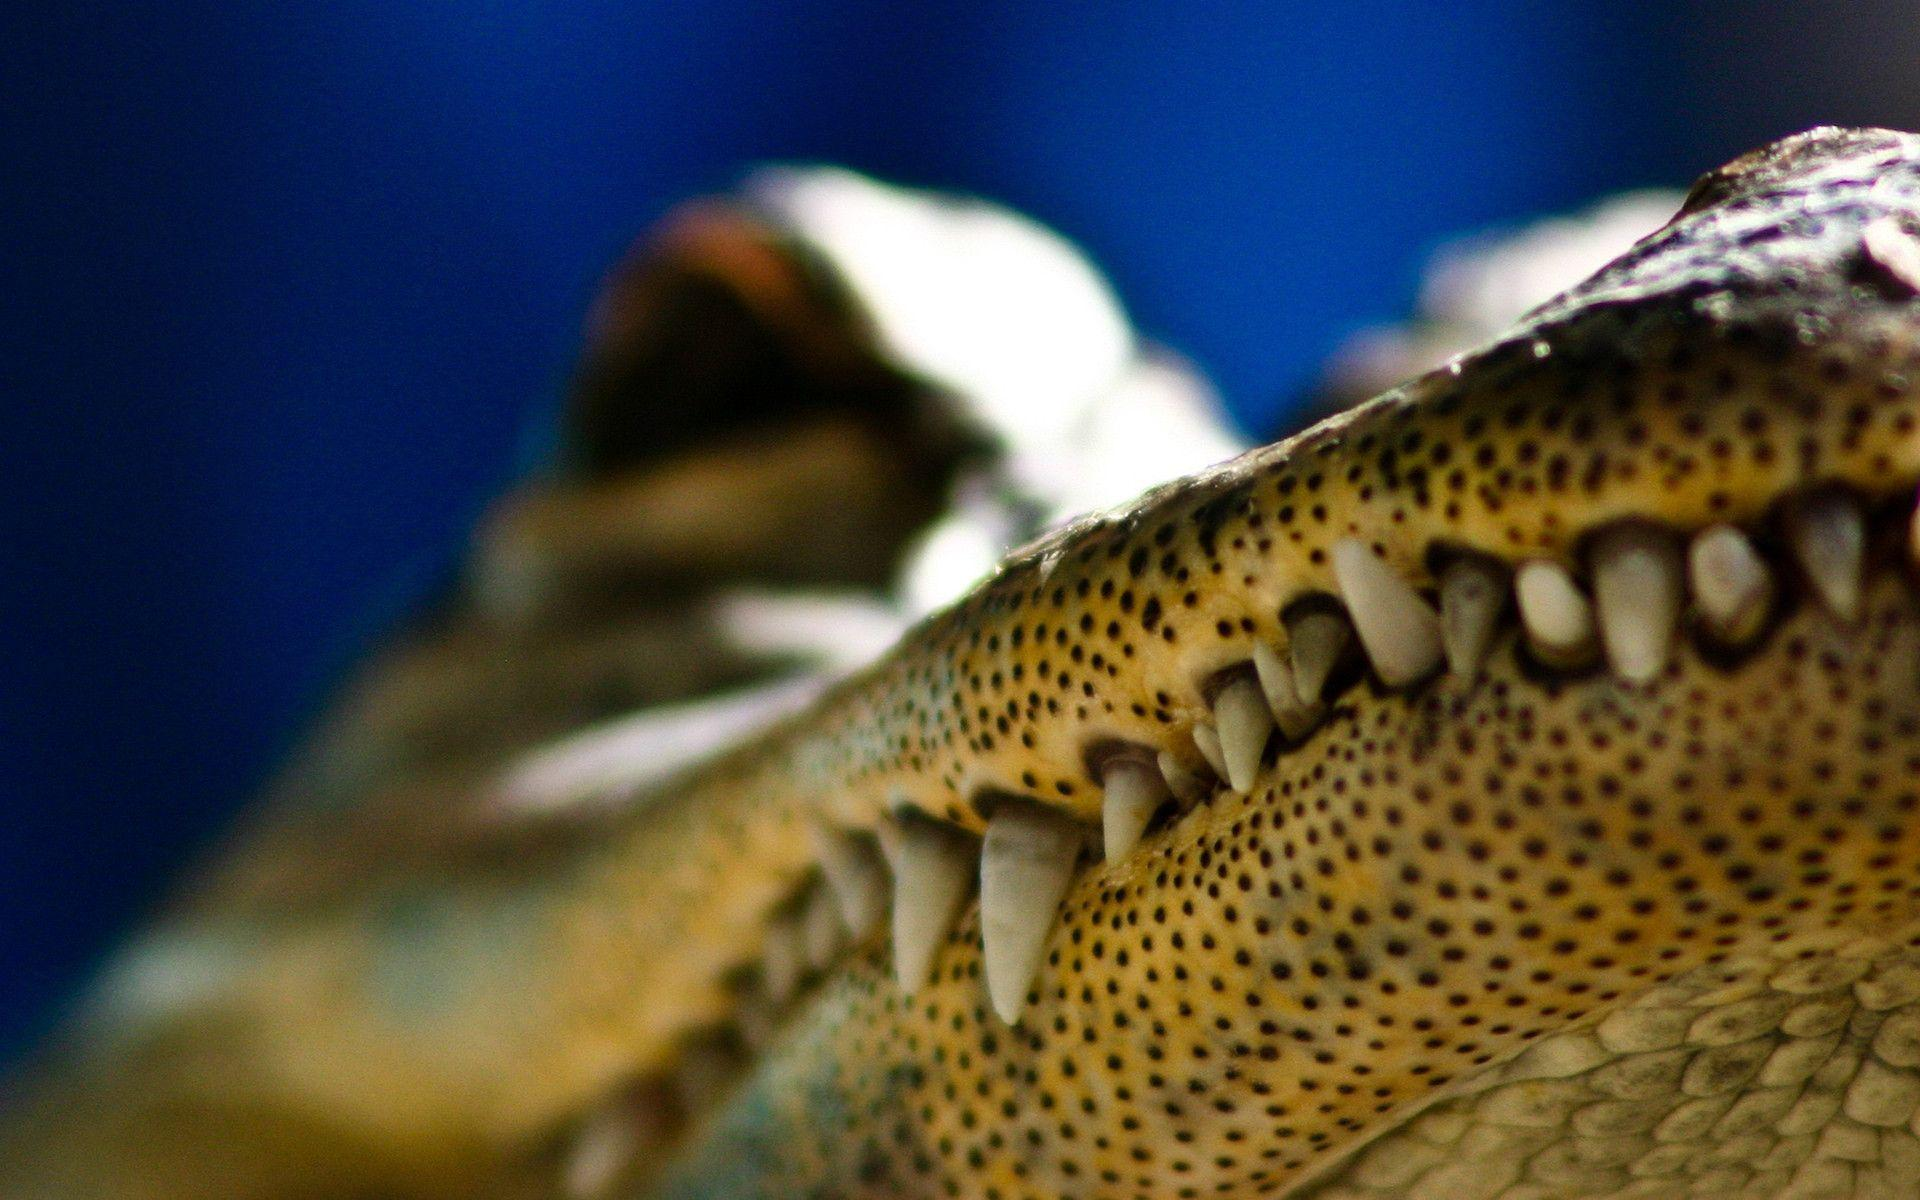 Reptile alligator wallpapers animals everglades wallpapers